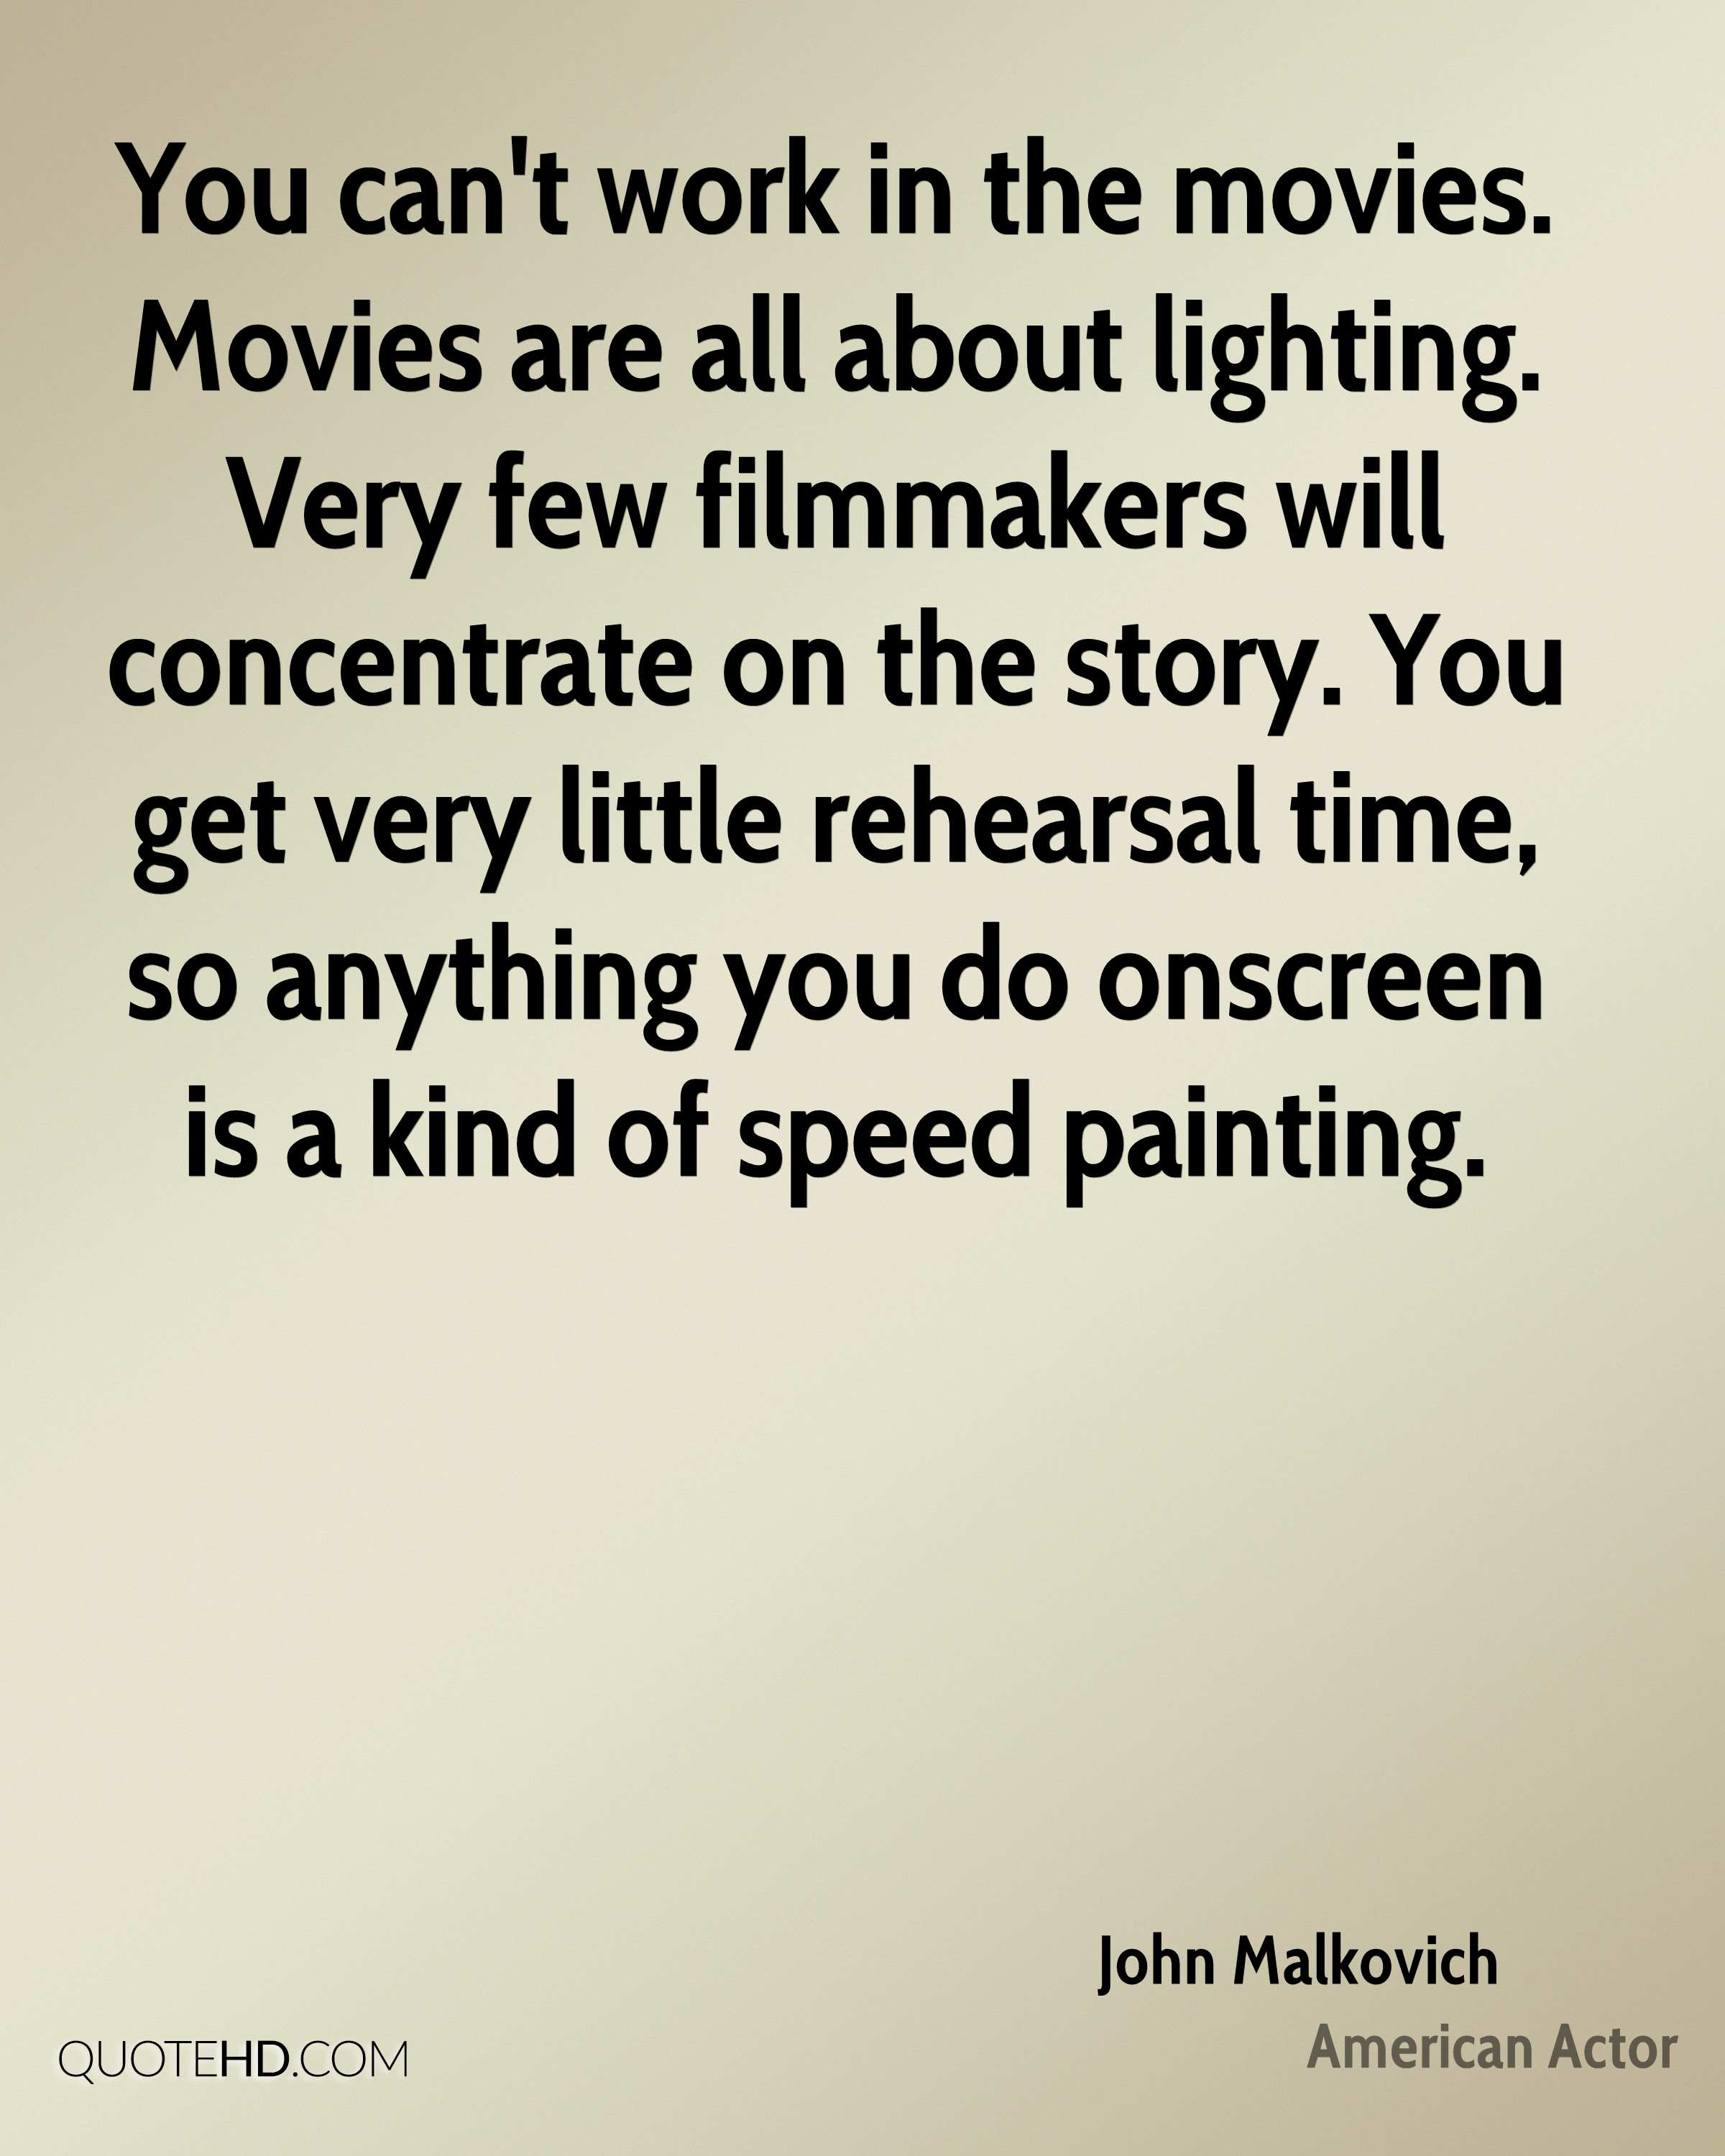 You can't work in the movies. Movies are all about lighting. Very few filmmakers will concentrate on the story. You get very little rehearsal time, so anything you do onscreen is a kind of speed painting.